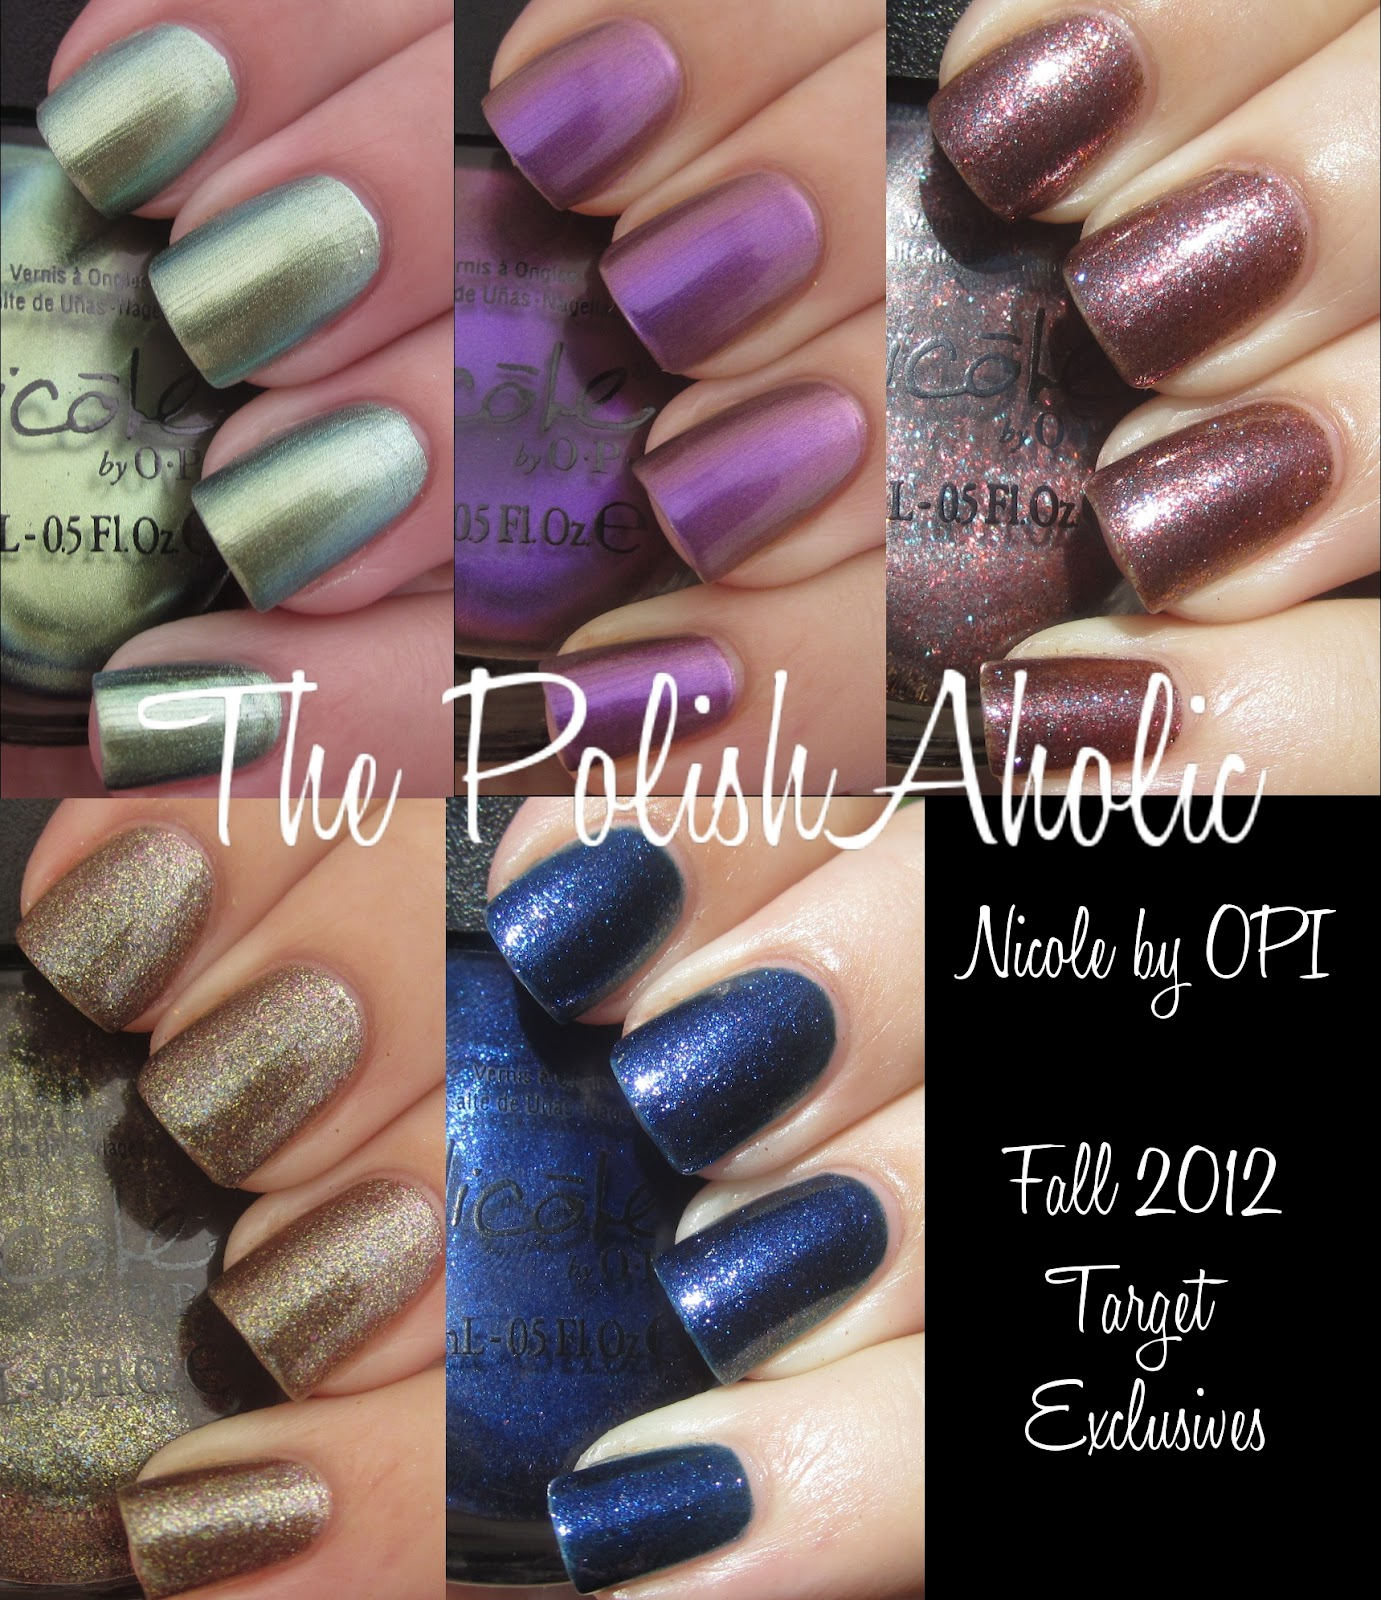 The PolishAholic: Nicole by OPI Fall 2012 Target Exclusives